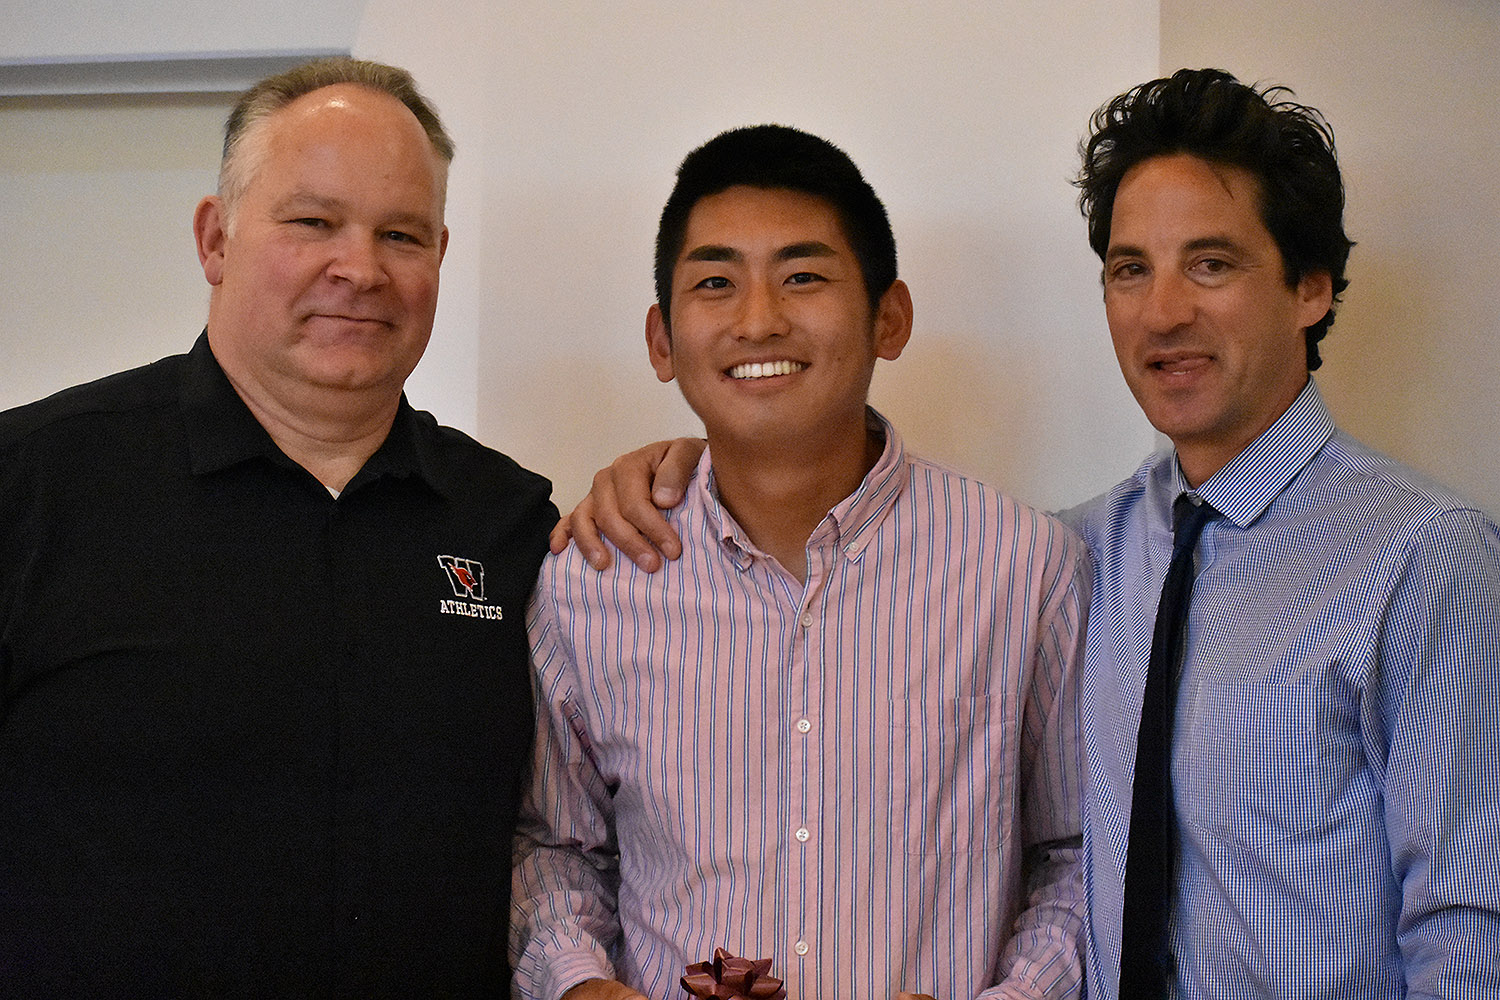 Tennis player Steven Chen '18 received the Maynard Award, which recognizes the top senior male and female scholar-athletes at the university. He is pictured with Whalen, left, and Mike Fried, head tennis coach, right. Along with Julie McDonald '18, Chen was also chosen by the administration to speak on behalf of student-athletes.